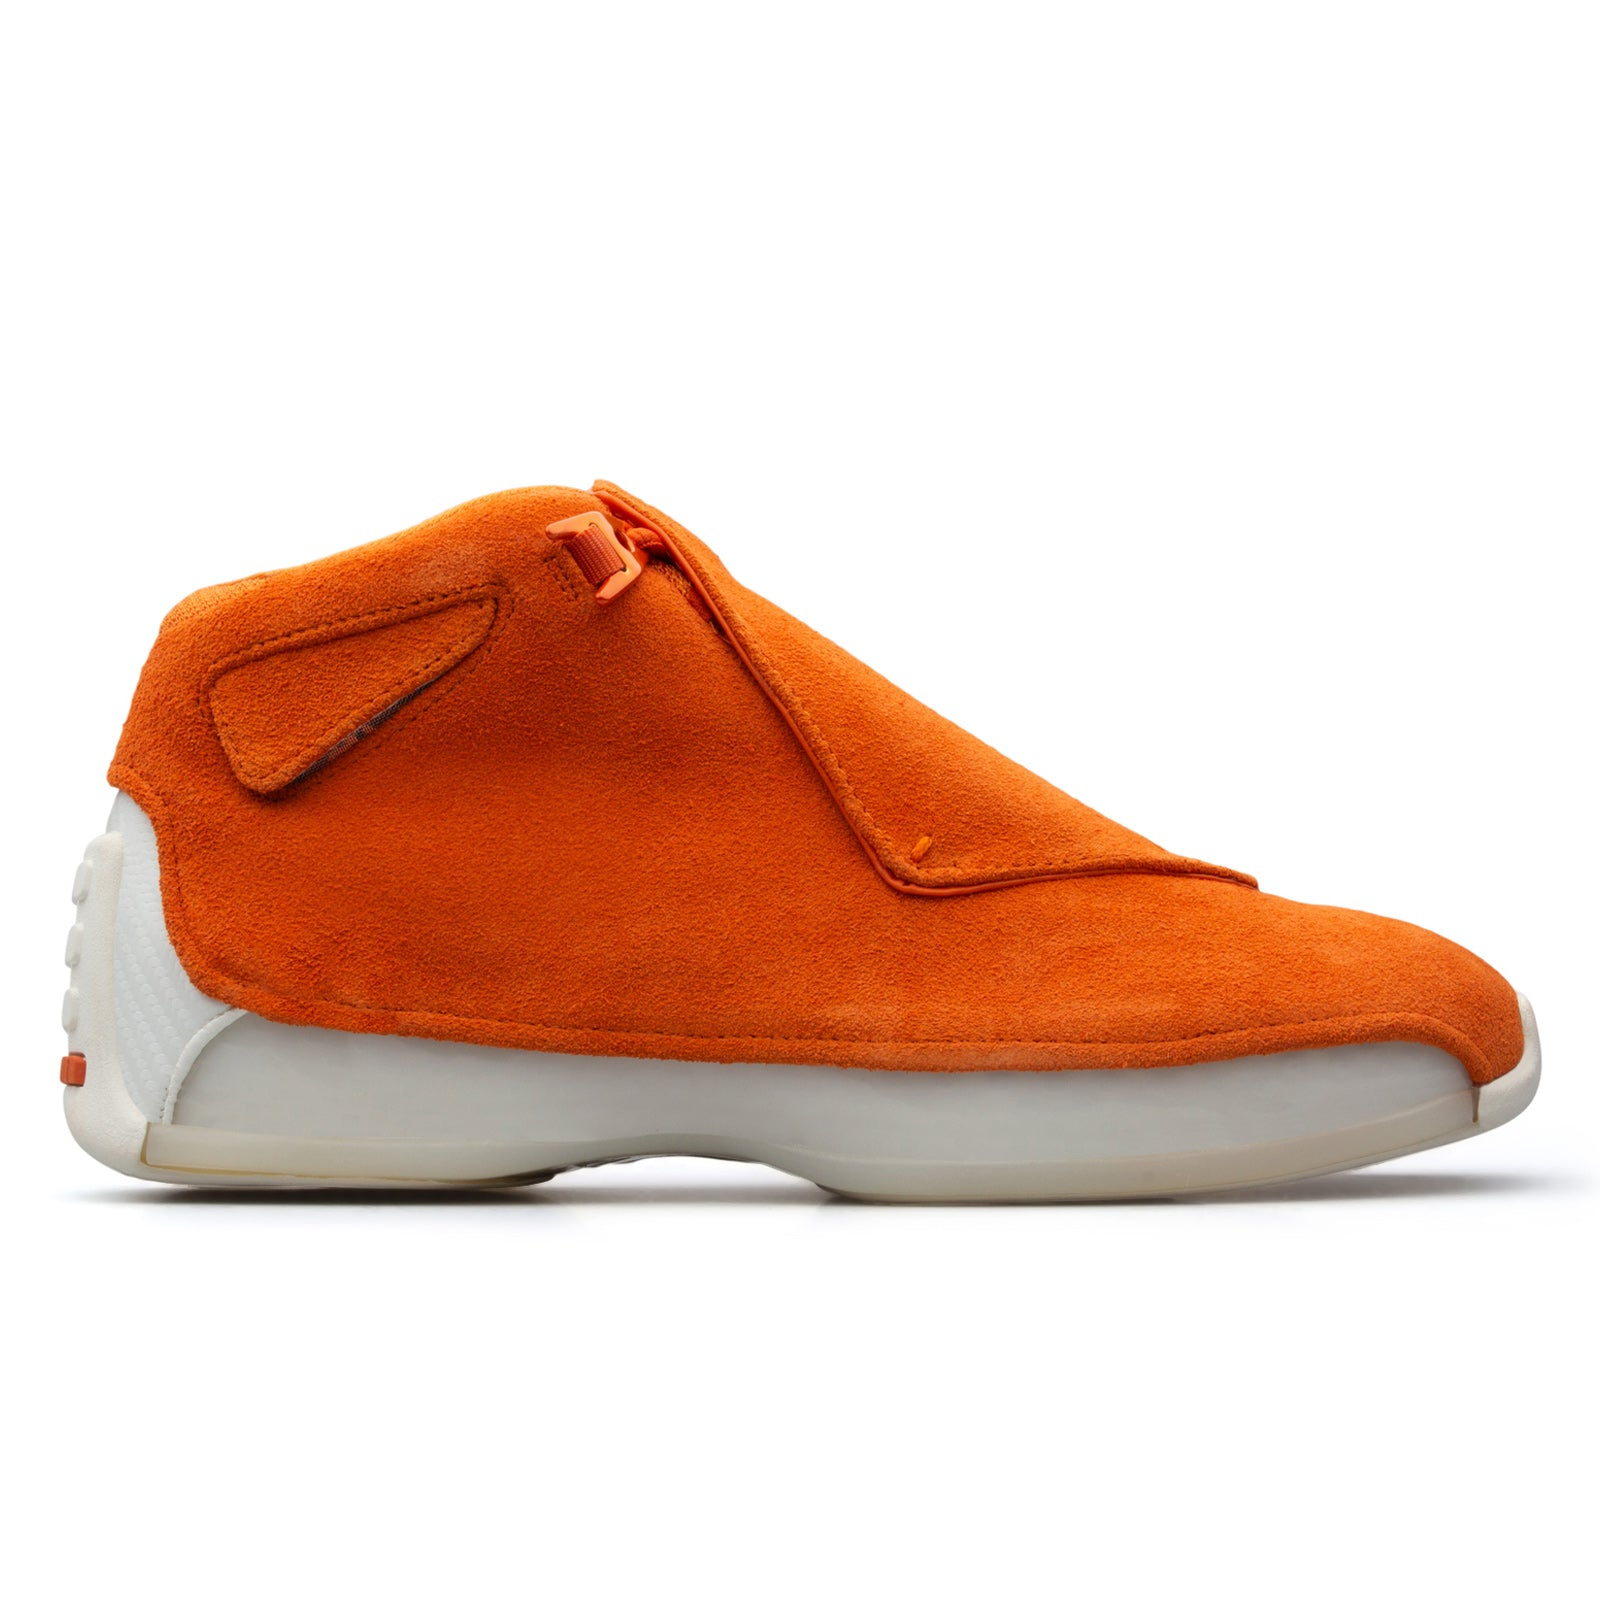 new style ca21f 12211 He took the court in 1985 wearing the original Air Jordan I, simultaneously  breaking league rules and his opponents  will while capturing the  imagination of ...